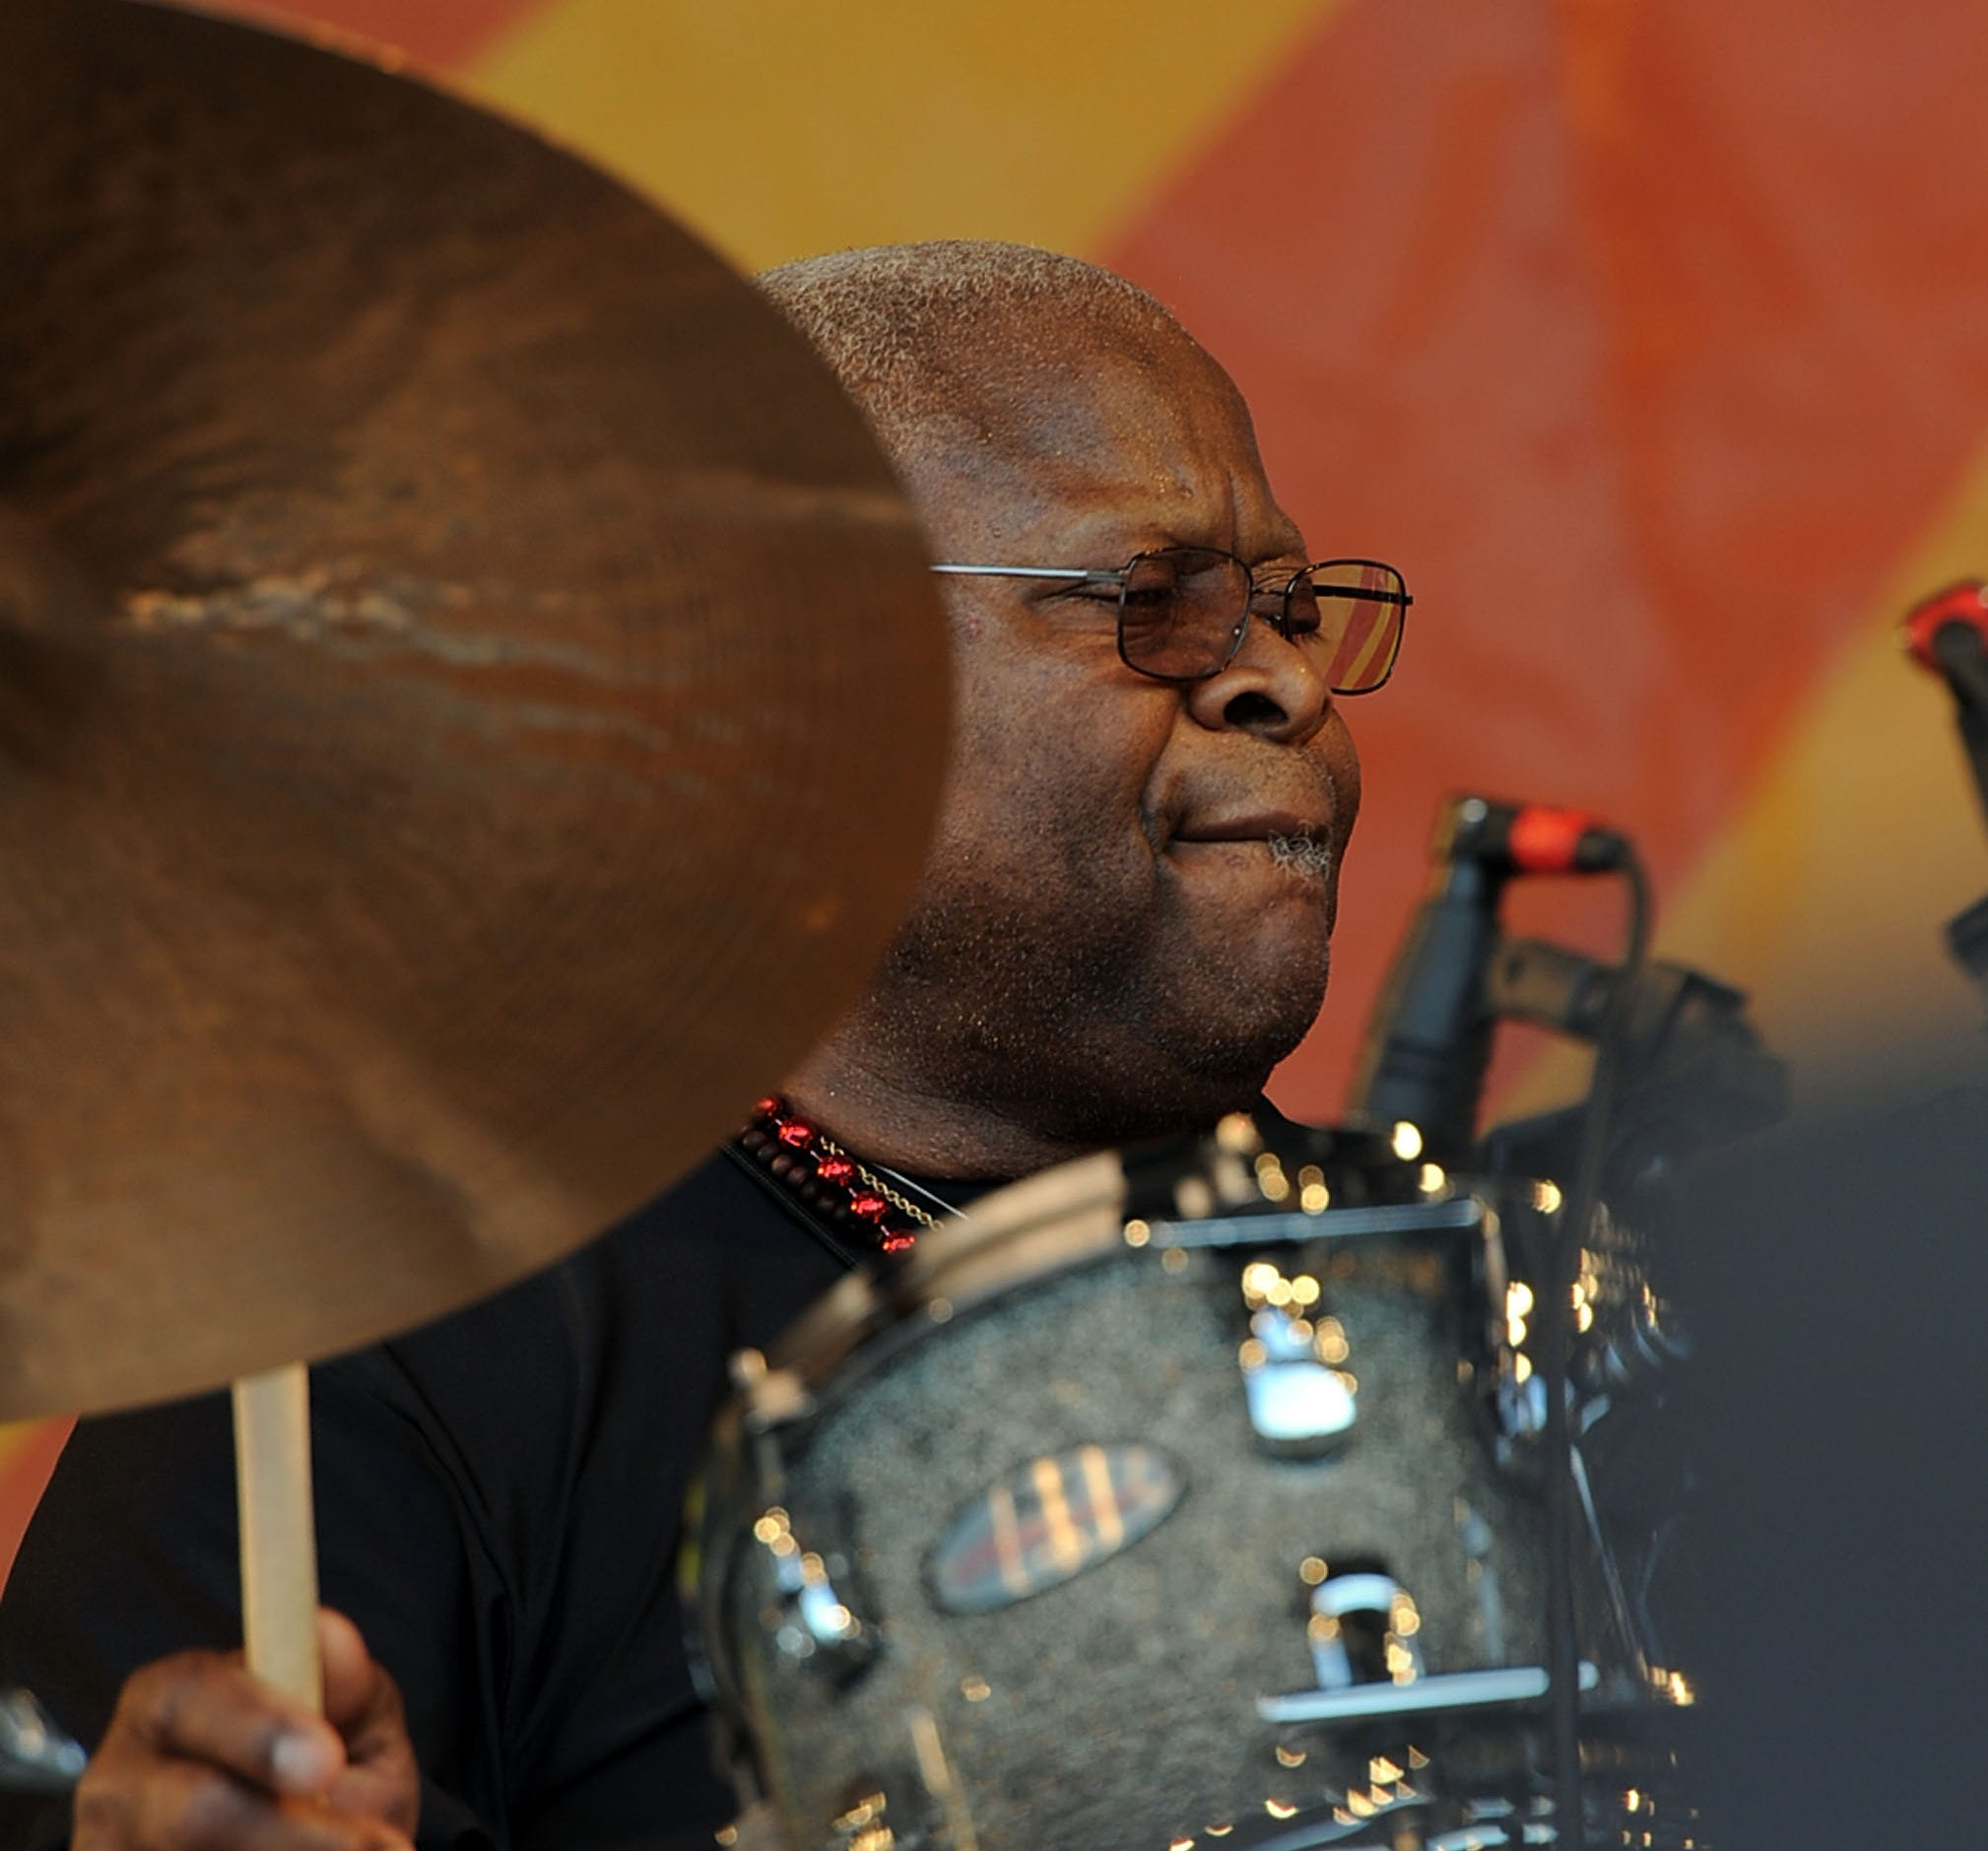 Recording artist Jaimoe Johanson (Allman Brothers Band)  performs at the 2010 New Orleans Jazz & Heritage Festival Presented By Shell at the Fair Grounds Race Course on April 25, 2010 in New Orleans, Louisiana.